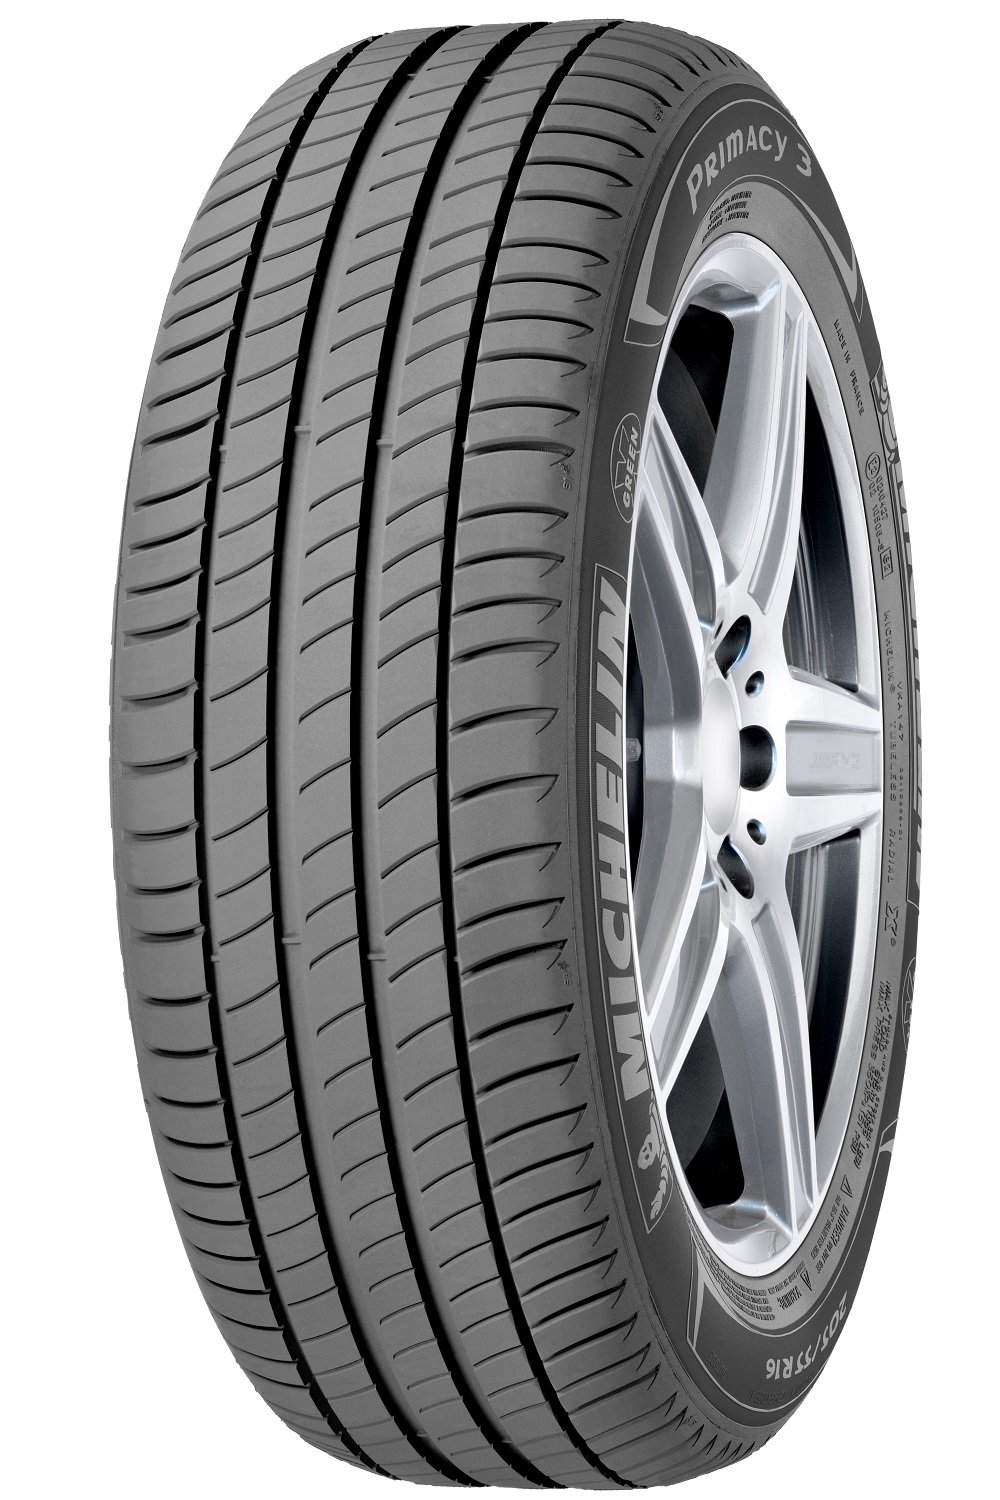 Pneu MICHELIN PRIMACY 3 275/40R19 101 Y